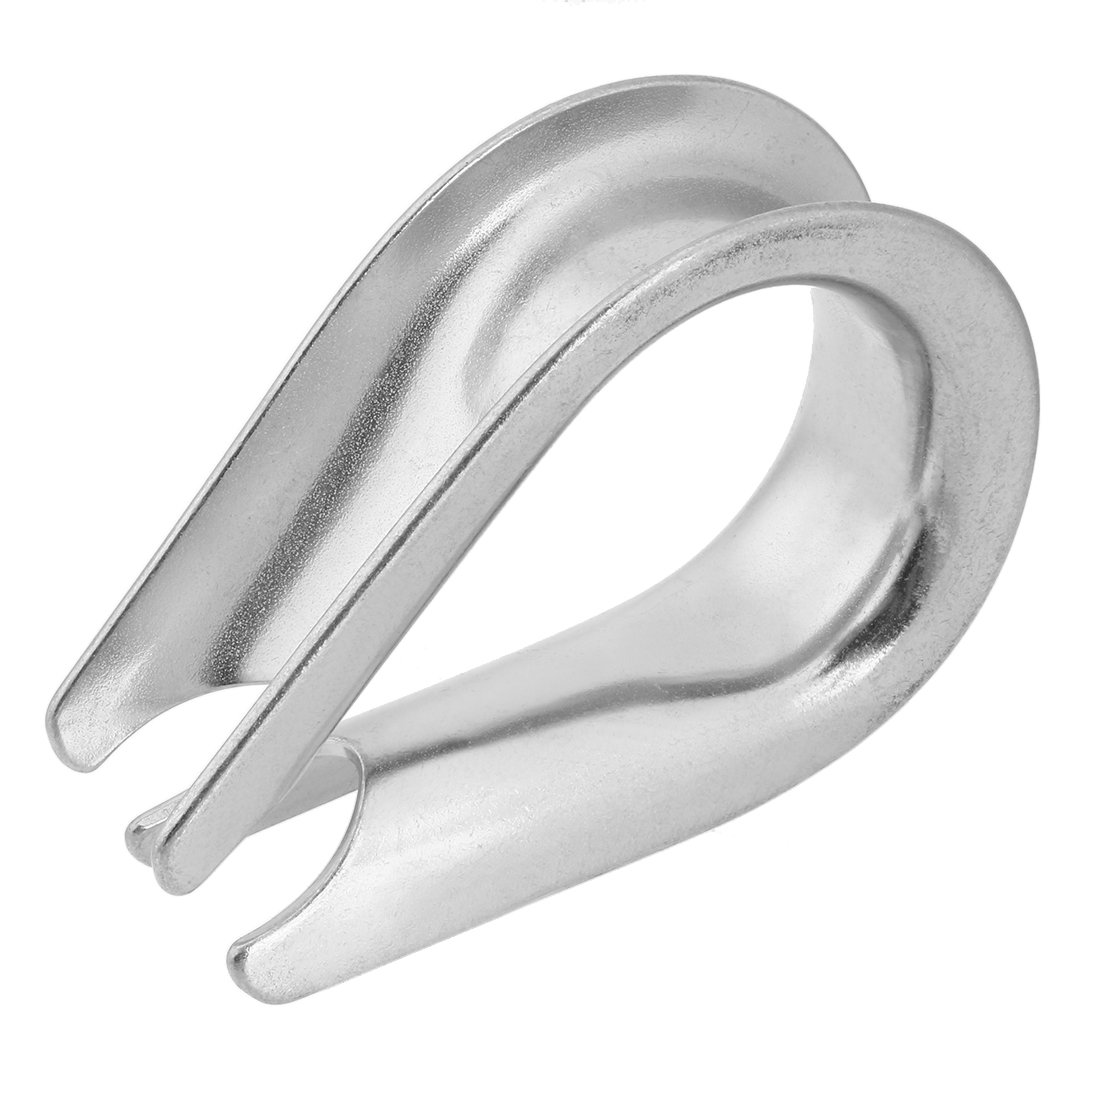 uxcell 304 Stainless Steel Thimble for 0.79 inch (20mm) Diameter Wire Rope 5pcs by uxcell (Image #4)